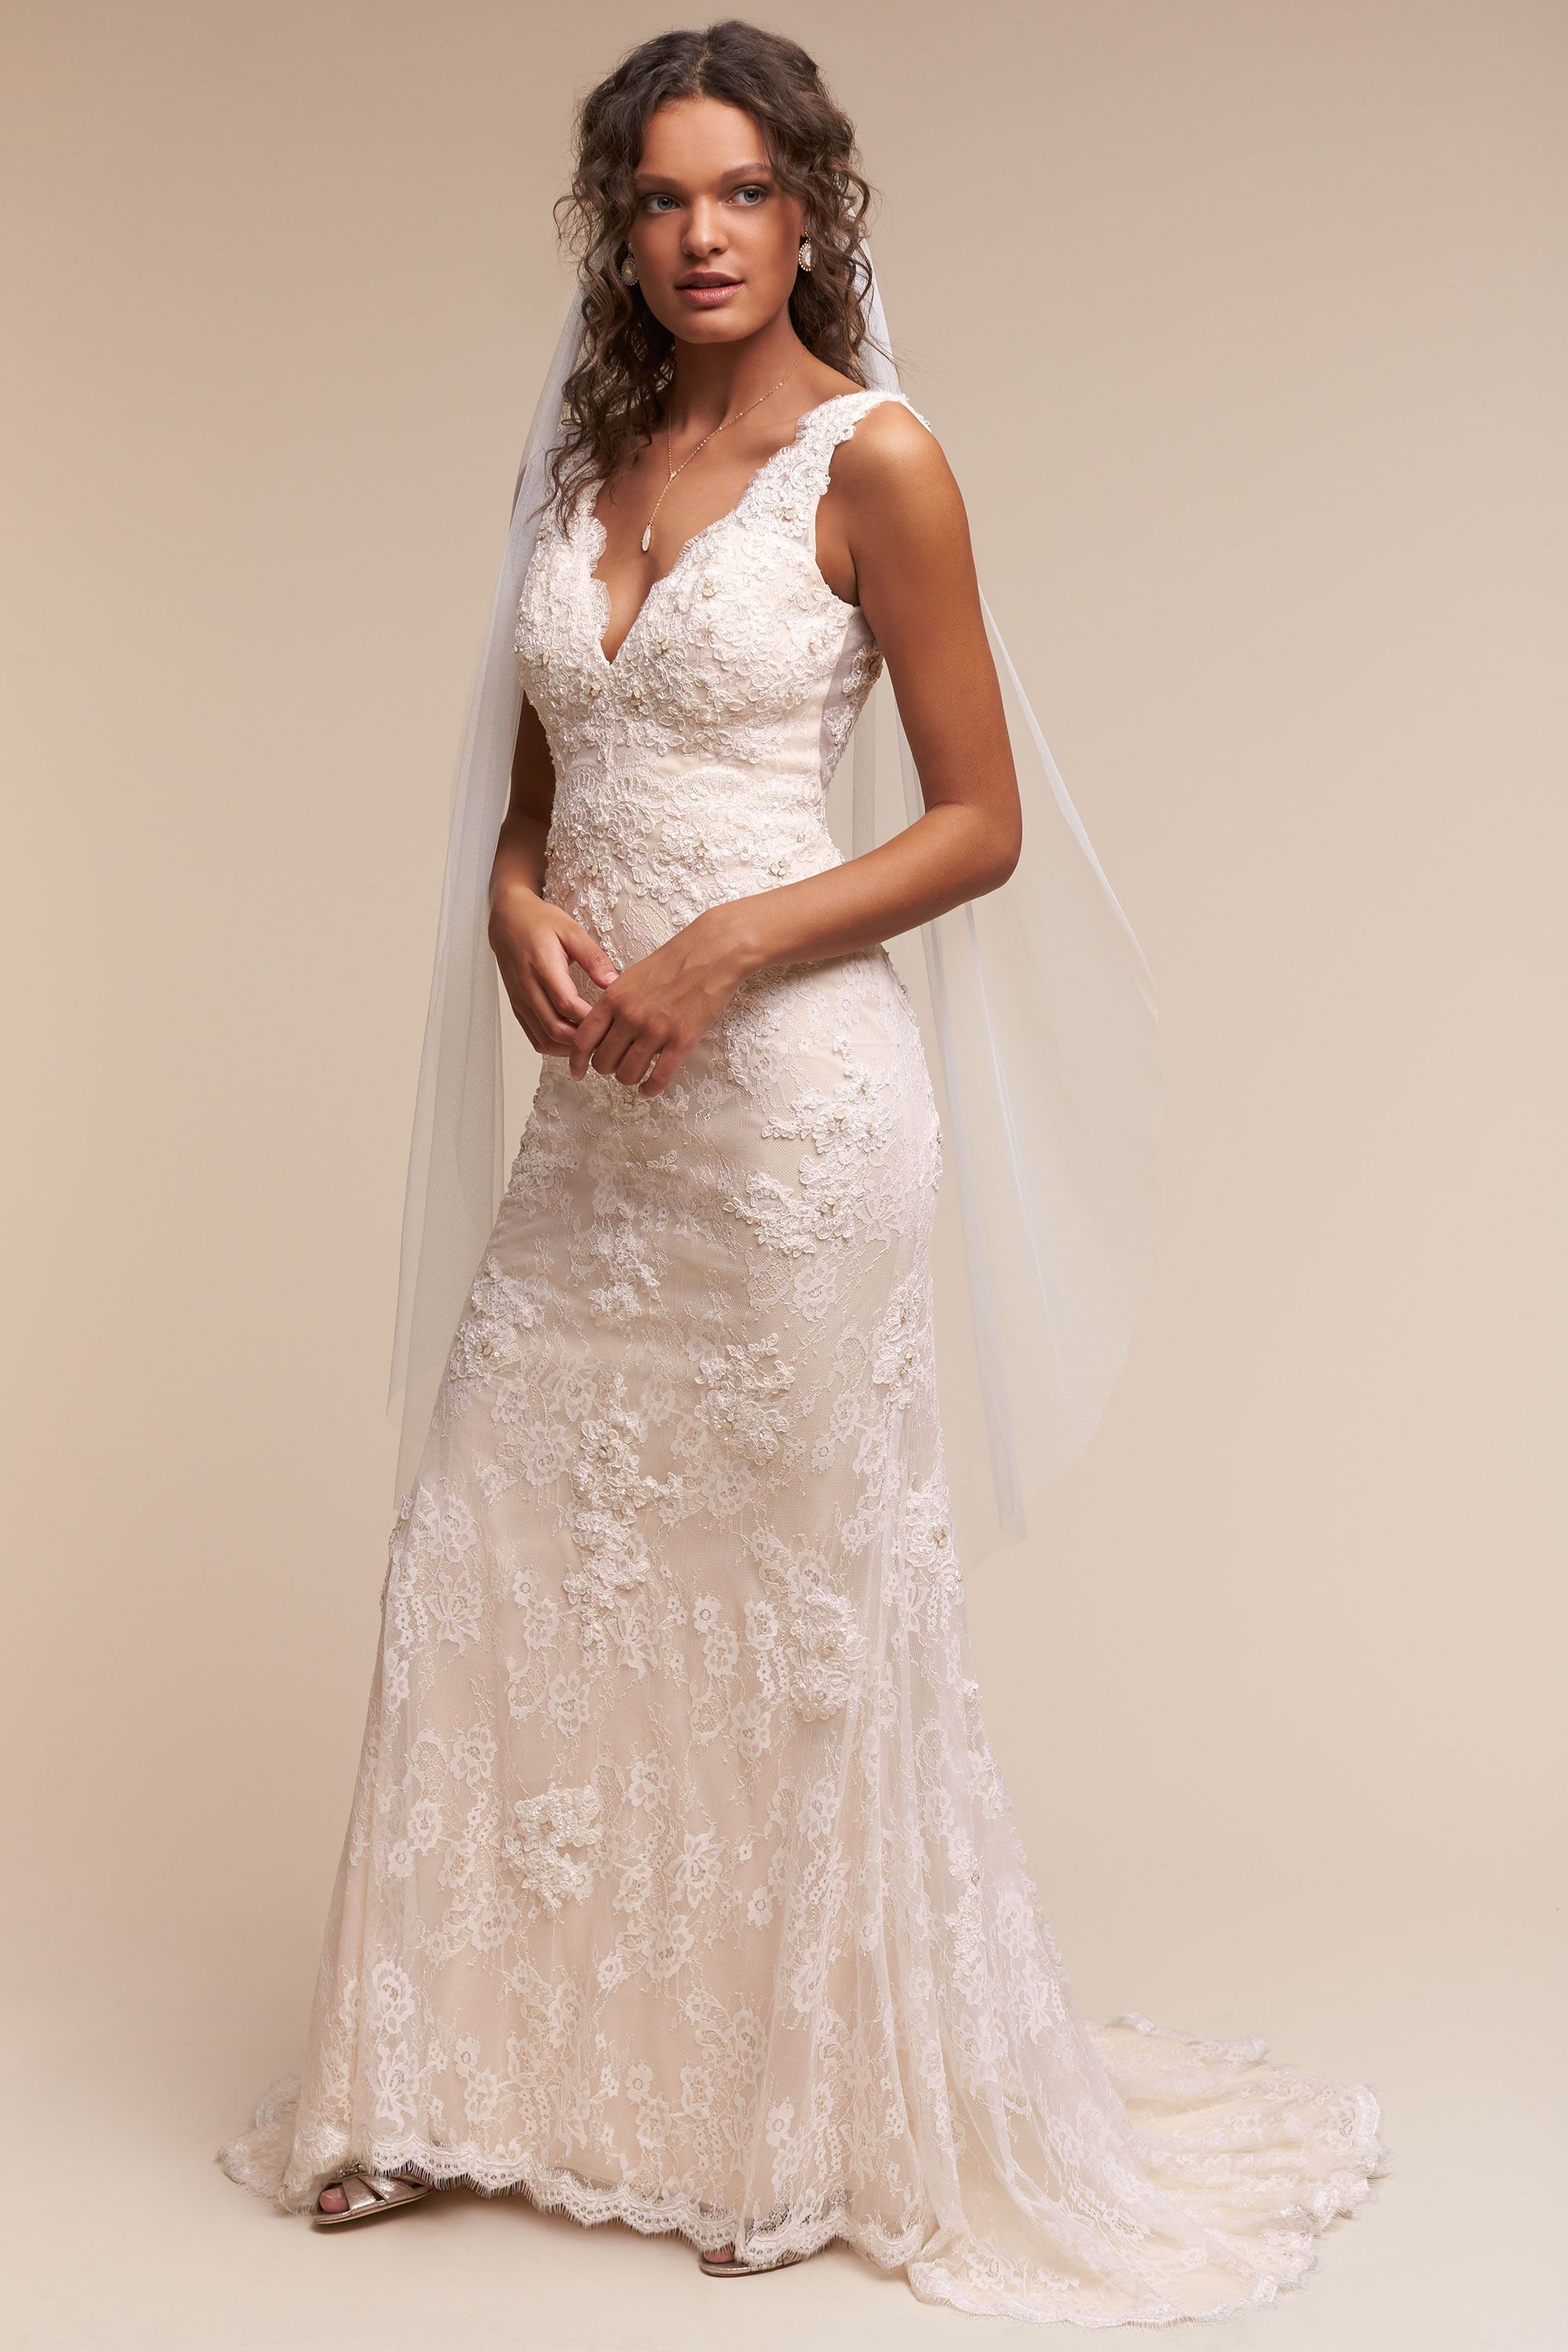 Eliana Gown from @BHLDN | Dresses 2 | Pinterest